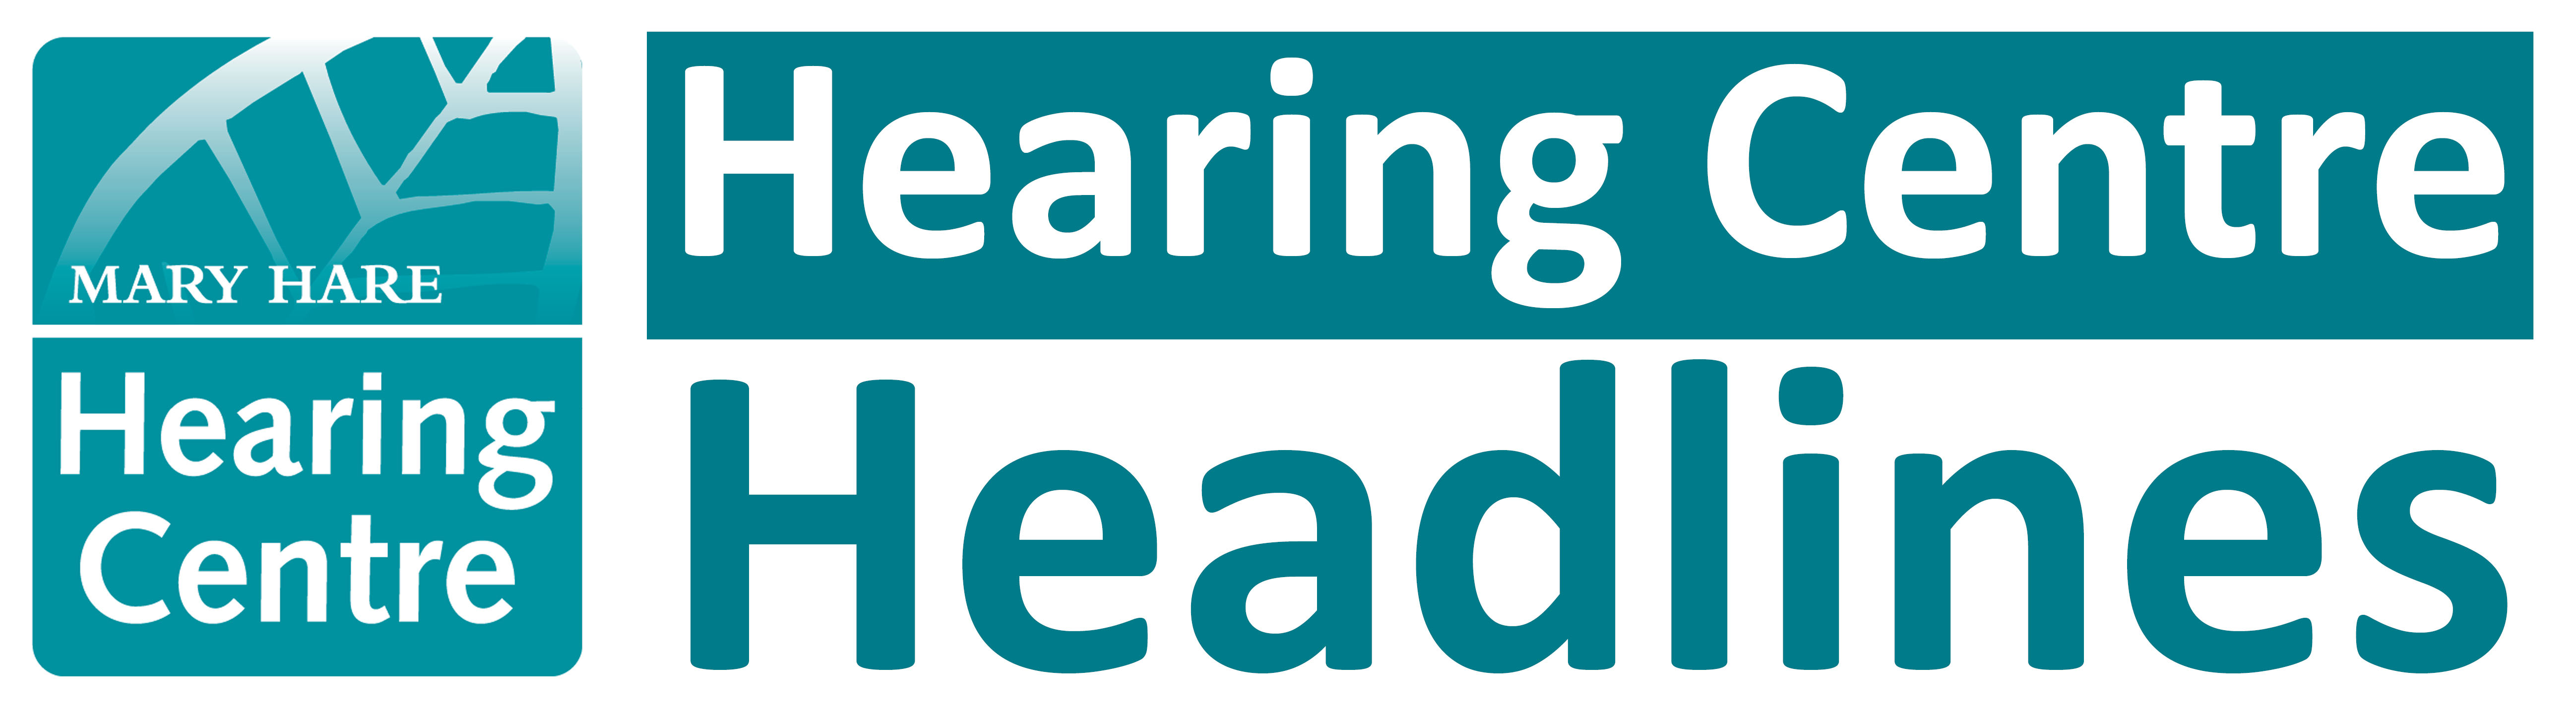 Hearing Centre Headlines Banner